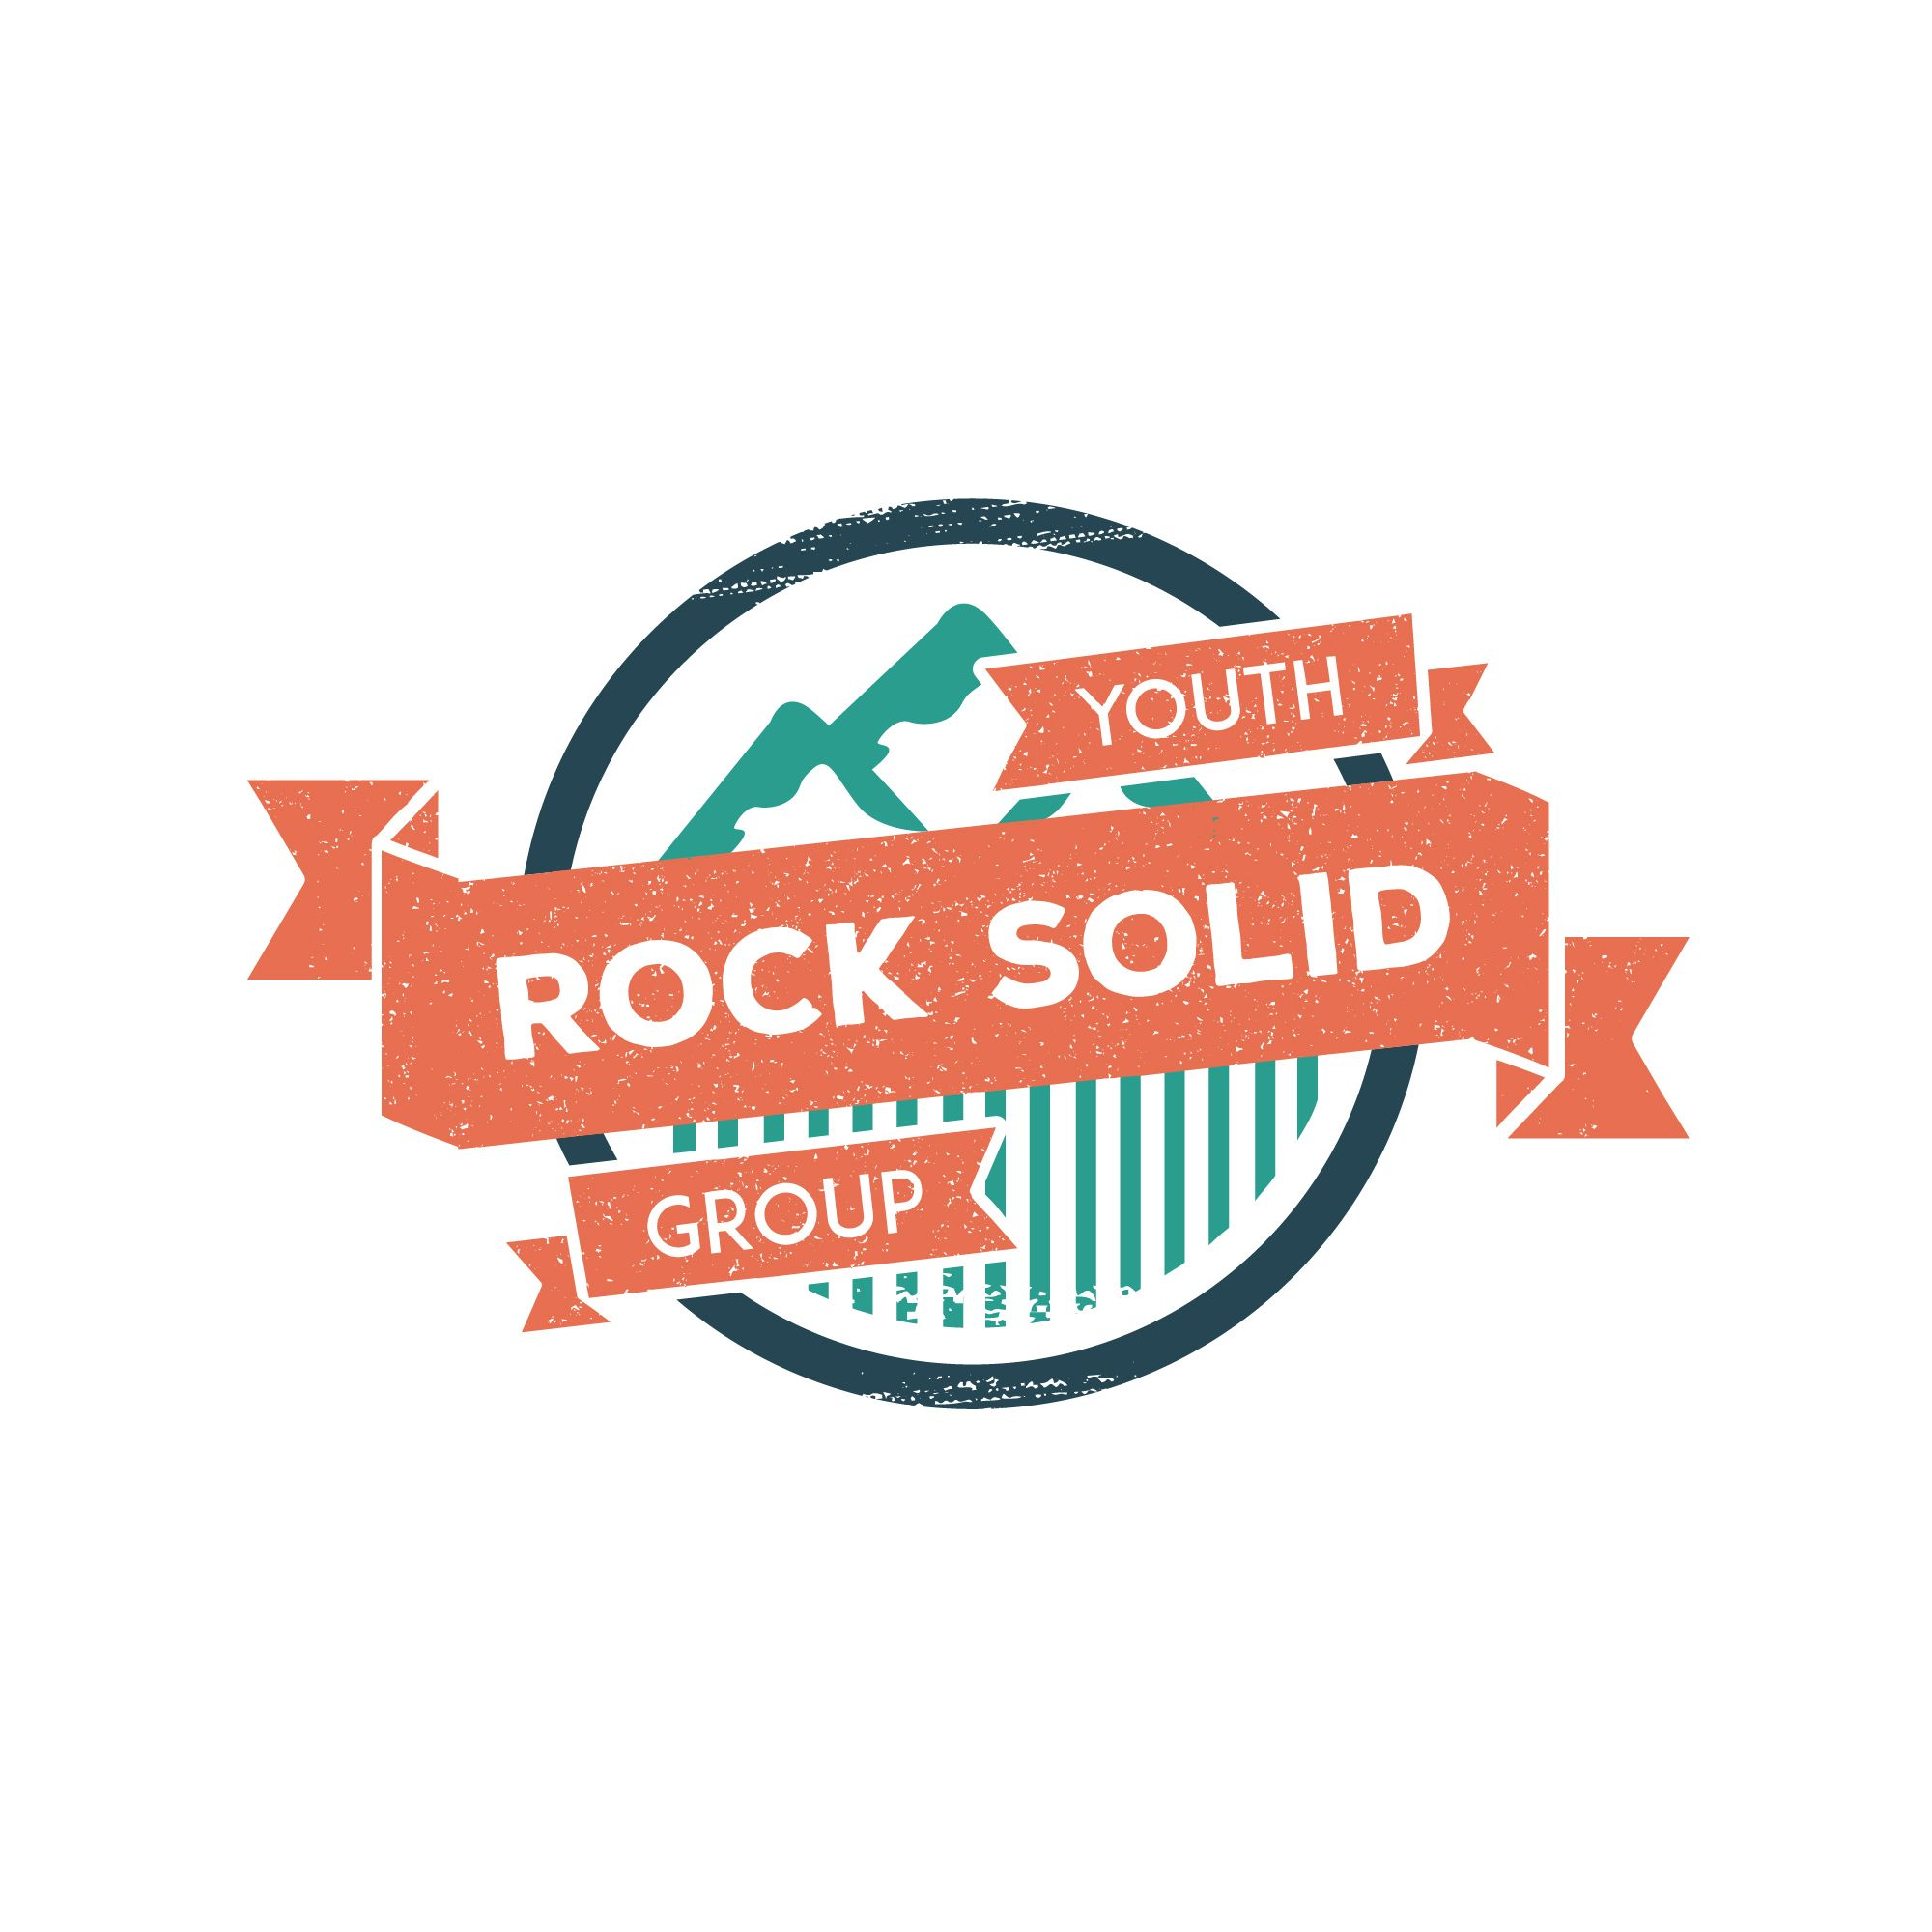 rock solid youth group youth group logos youth group logo ideas rh pinterest co uk youth group logo maker youth group logos ideas